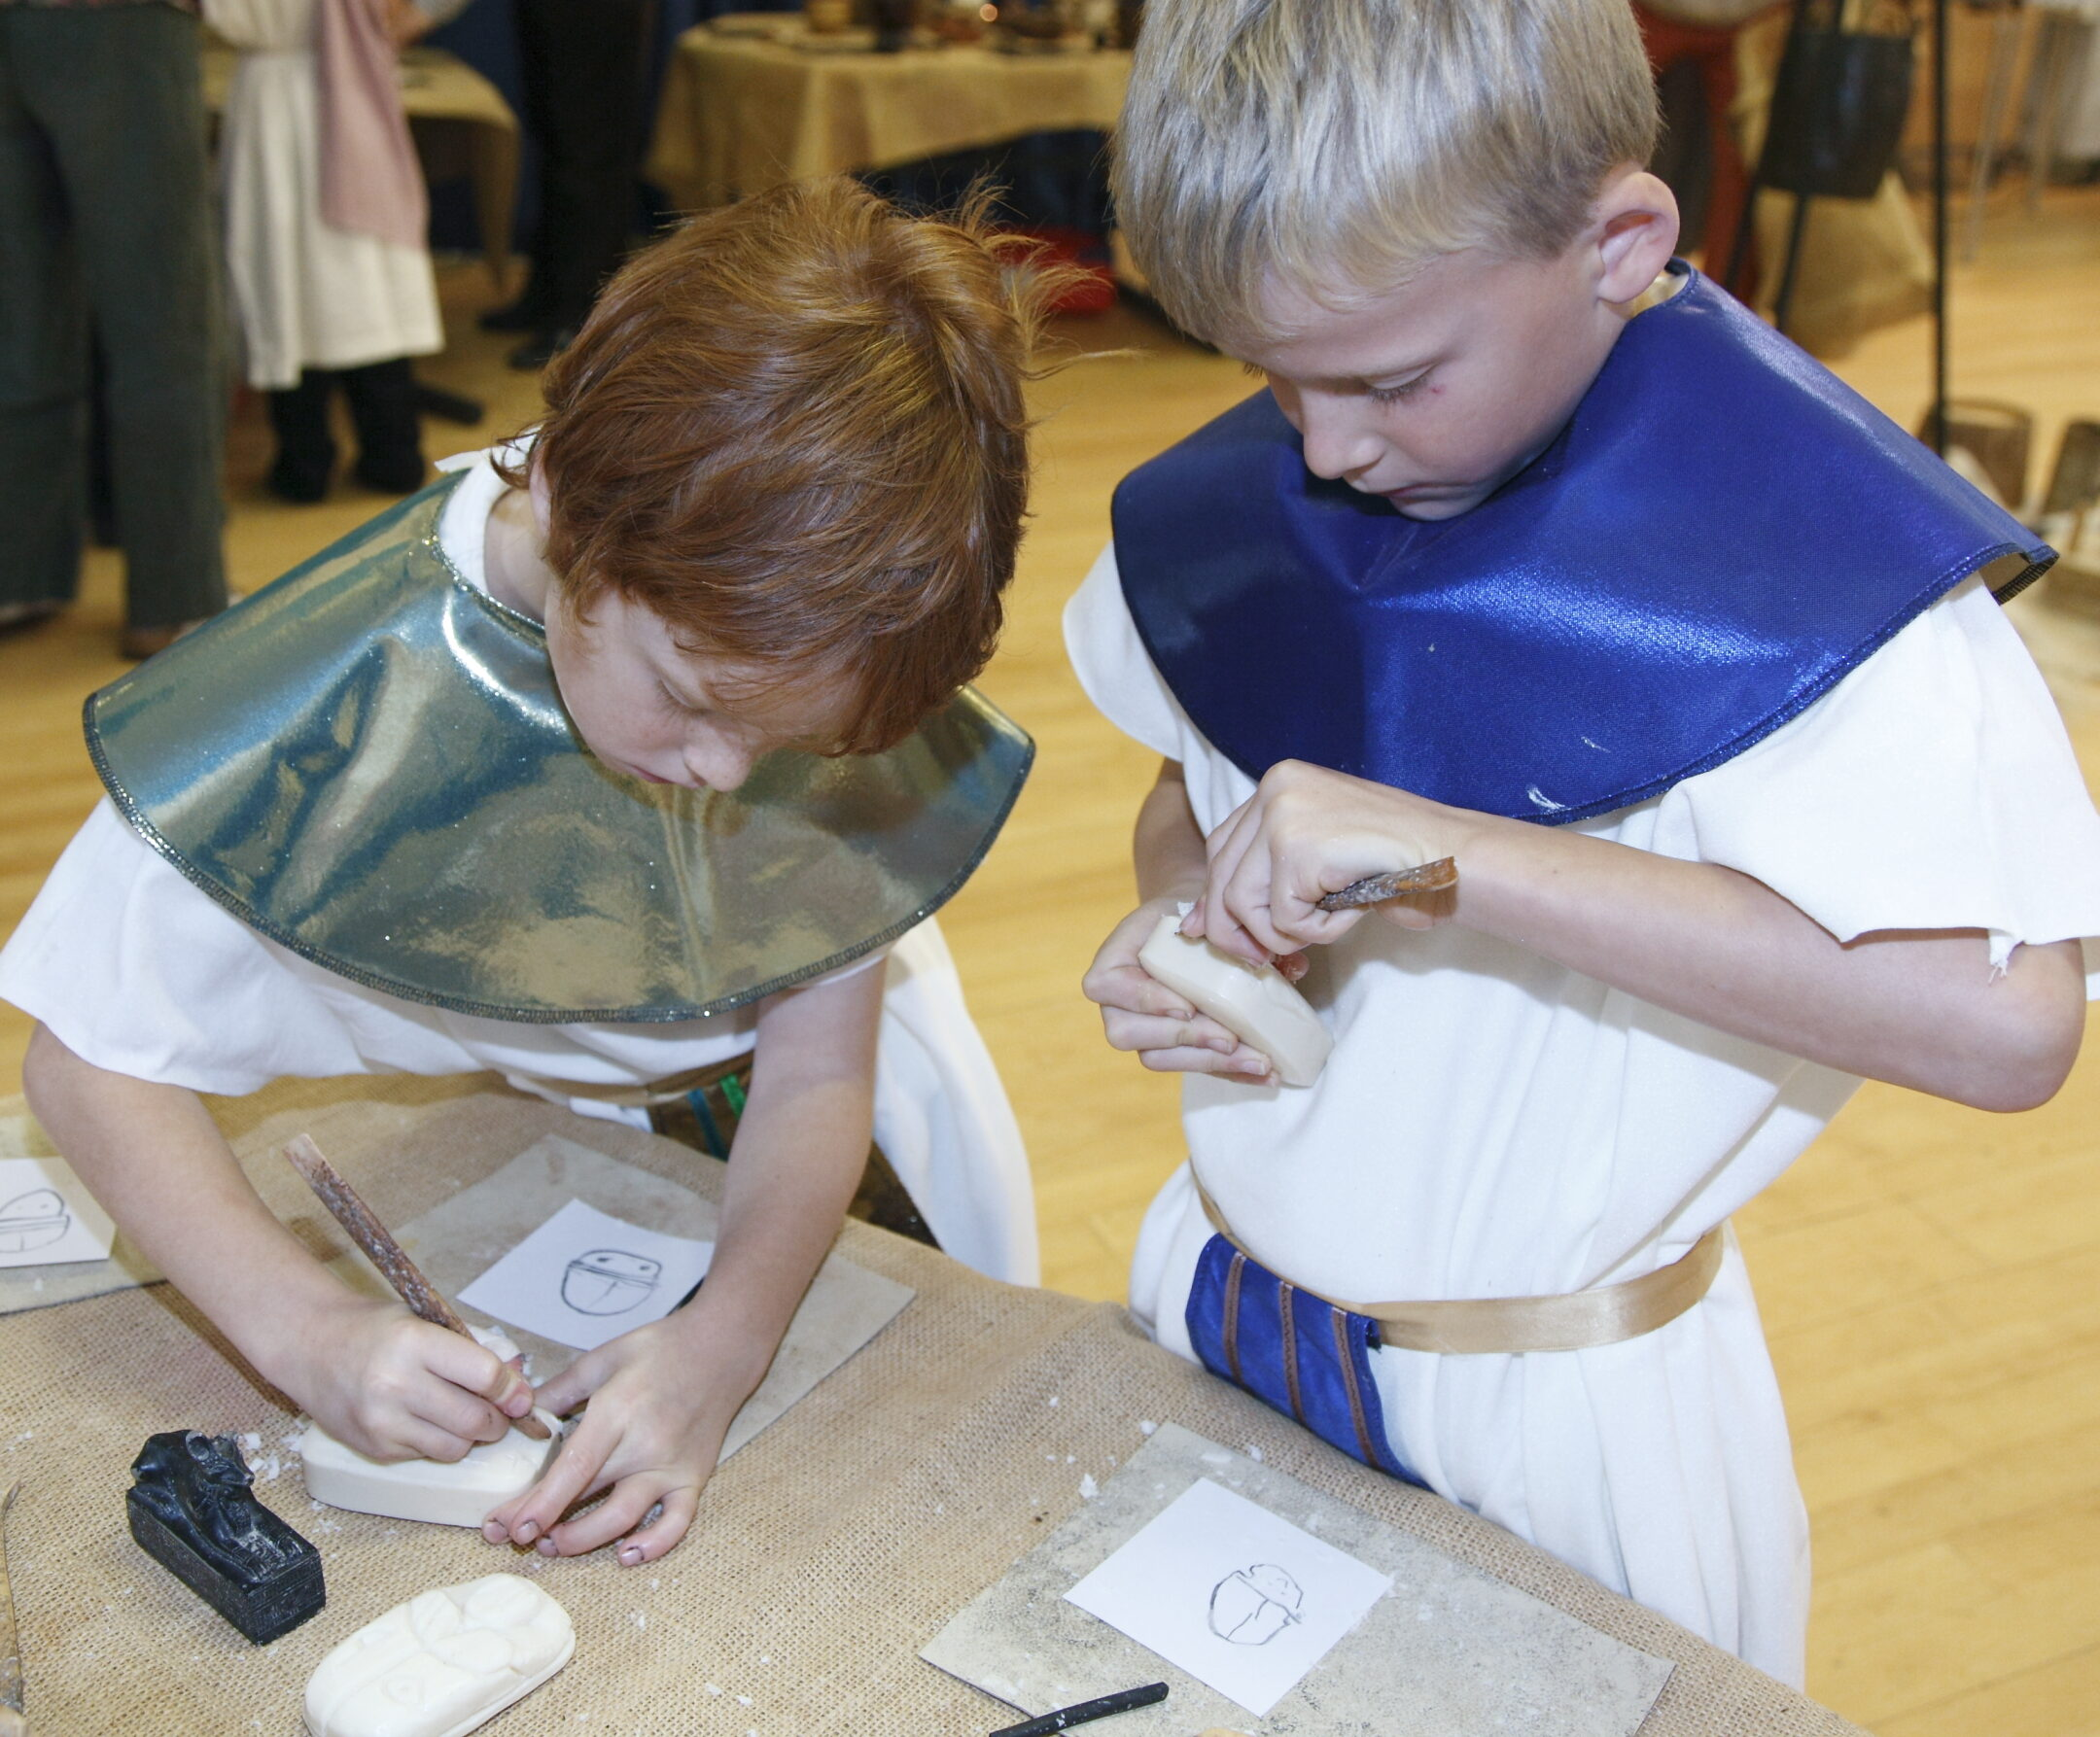 Two boys use wooden sticks to carve figures into white bars of soap.